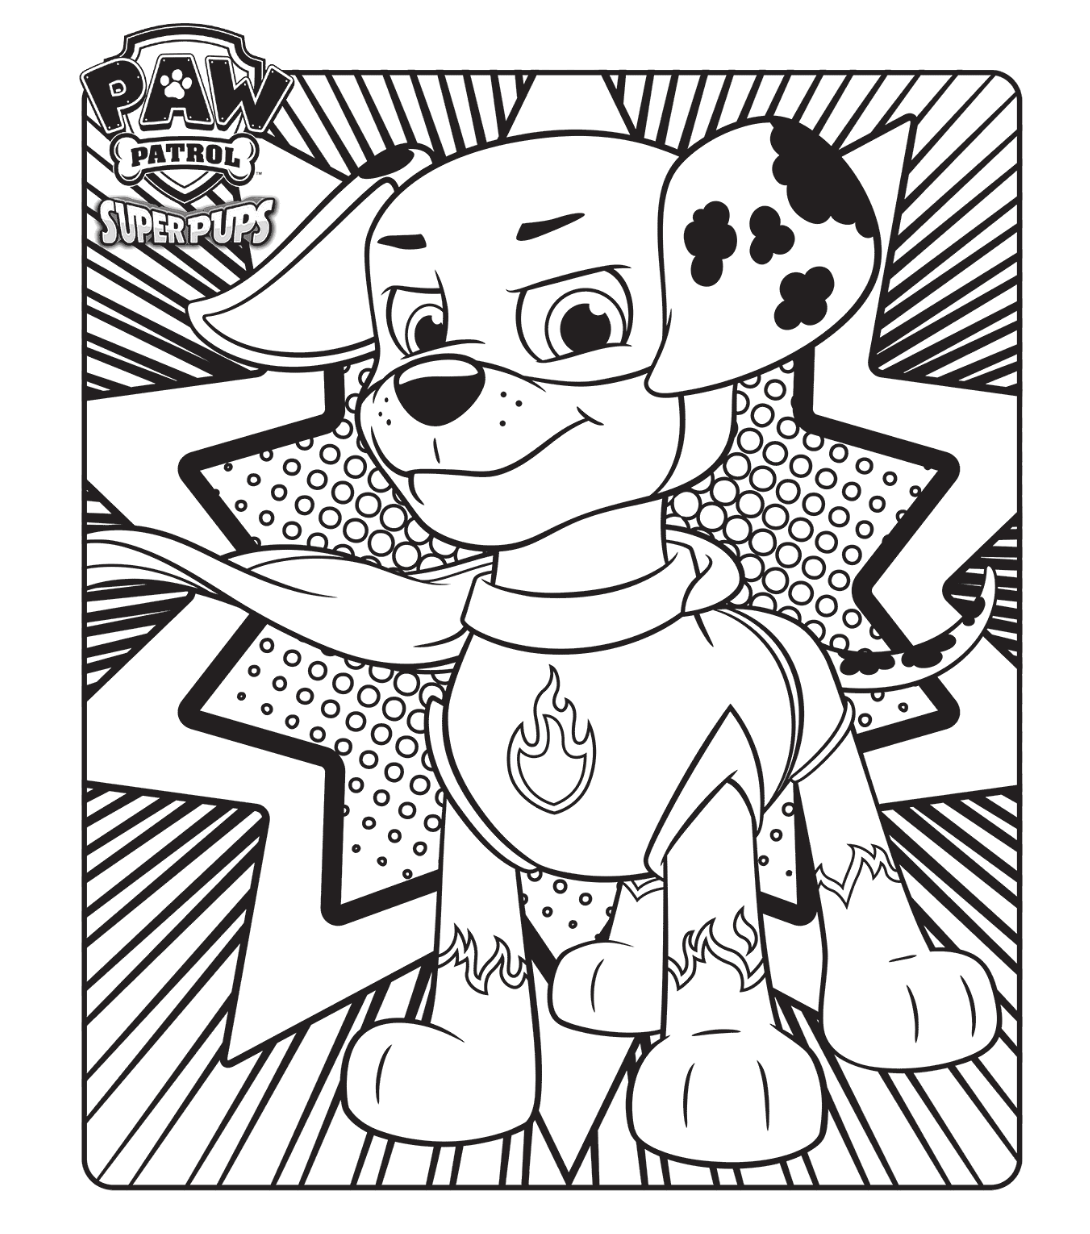 PAW Patrol Super Pups Colouring Page